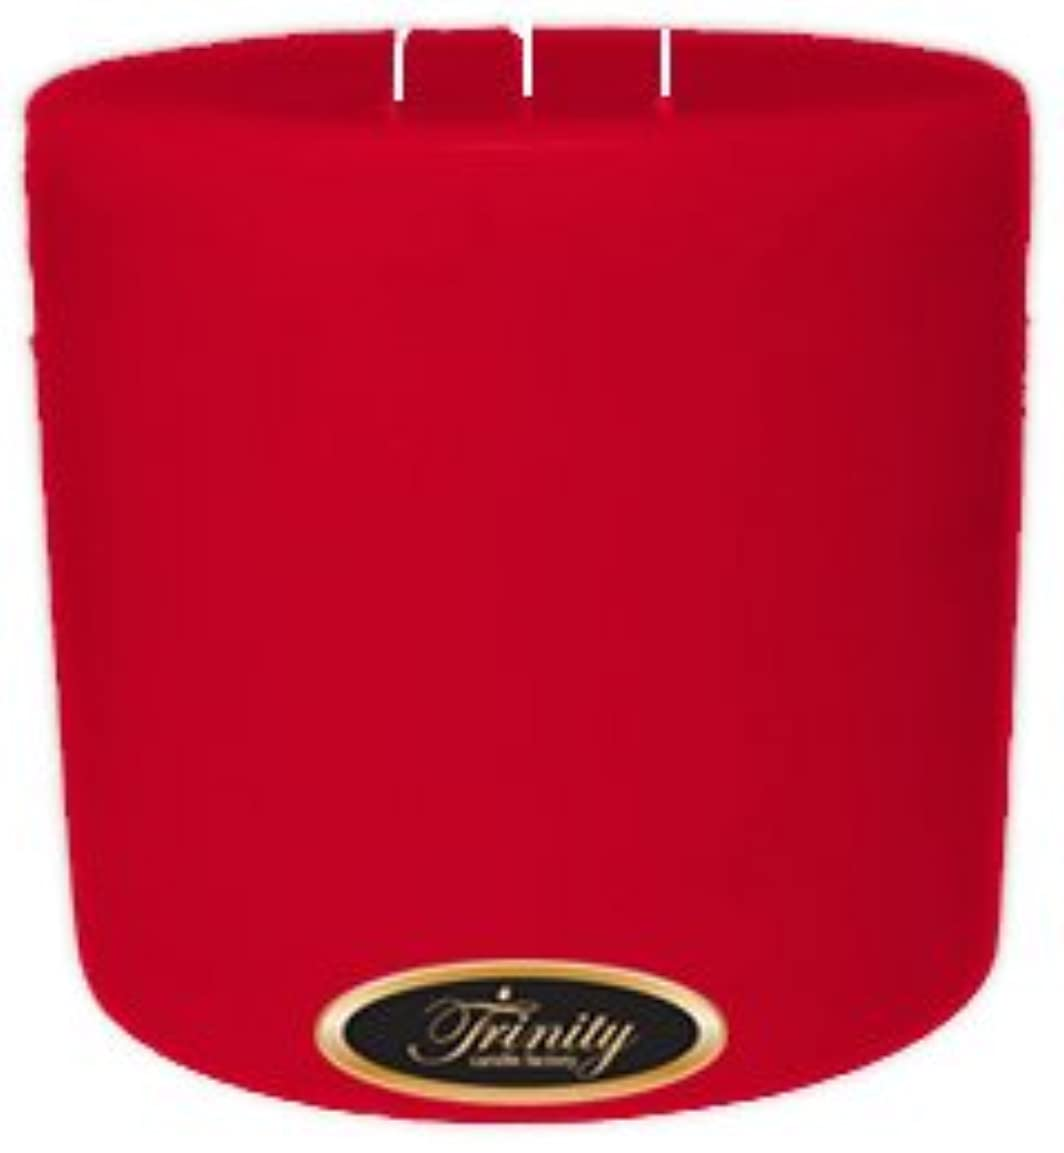 アルコーブトイレパッケージTrinity Candle工場 – Holly Berry – Pillar Candle – 6 x 6